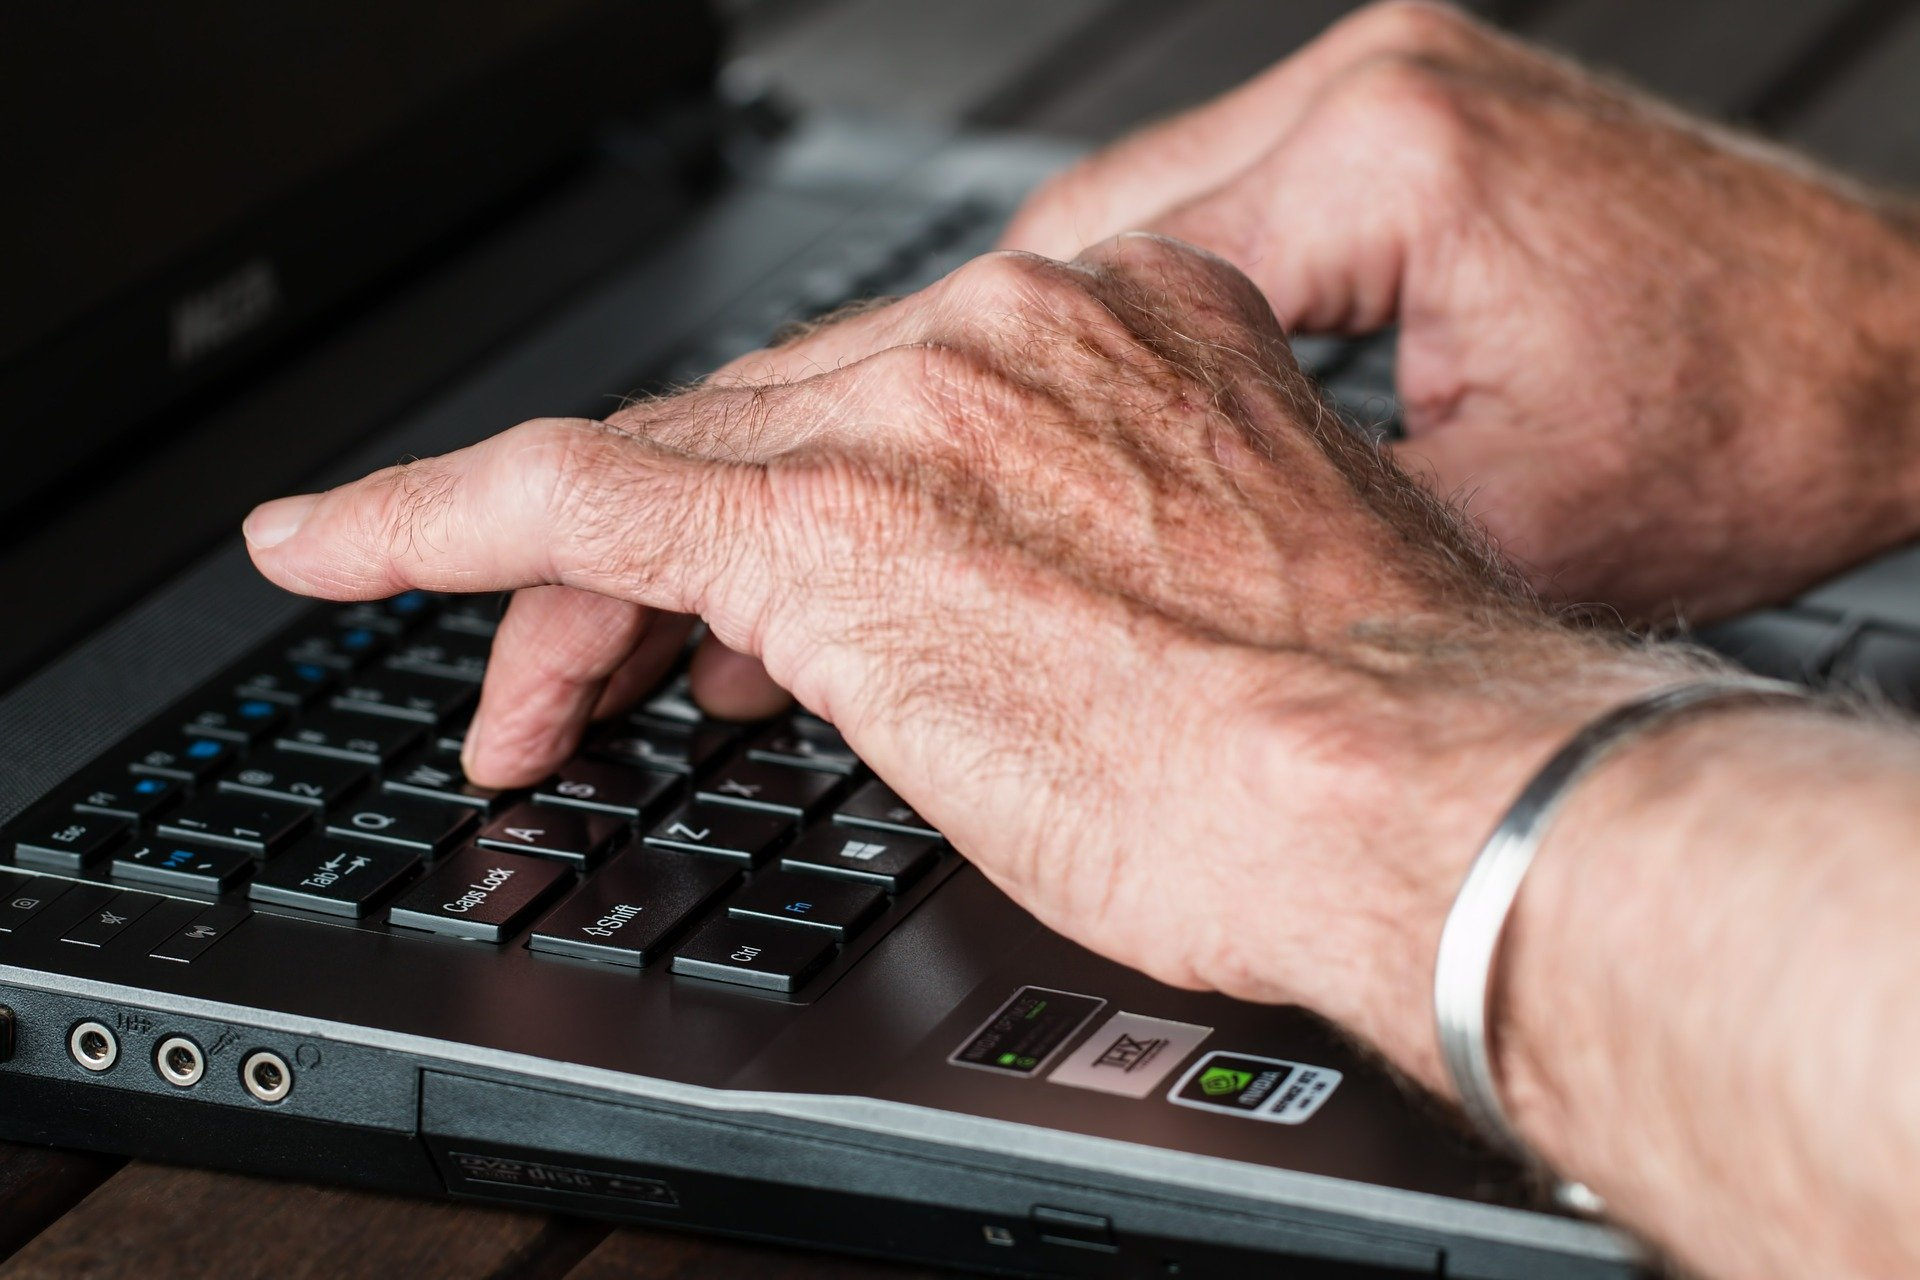 Old woman at the computer. | Source:Steve Buissinne/Pixabay